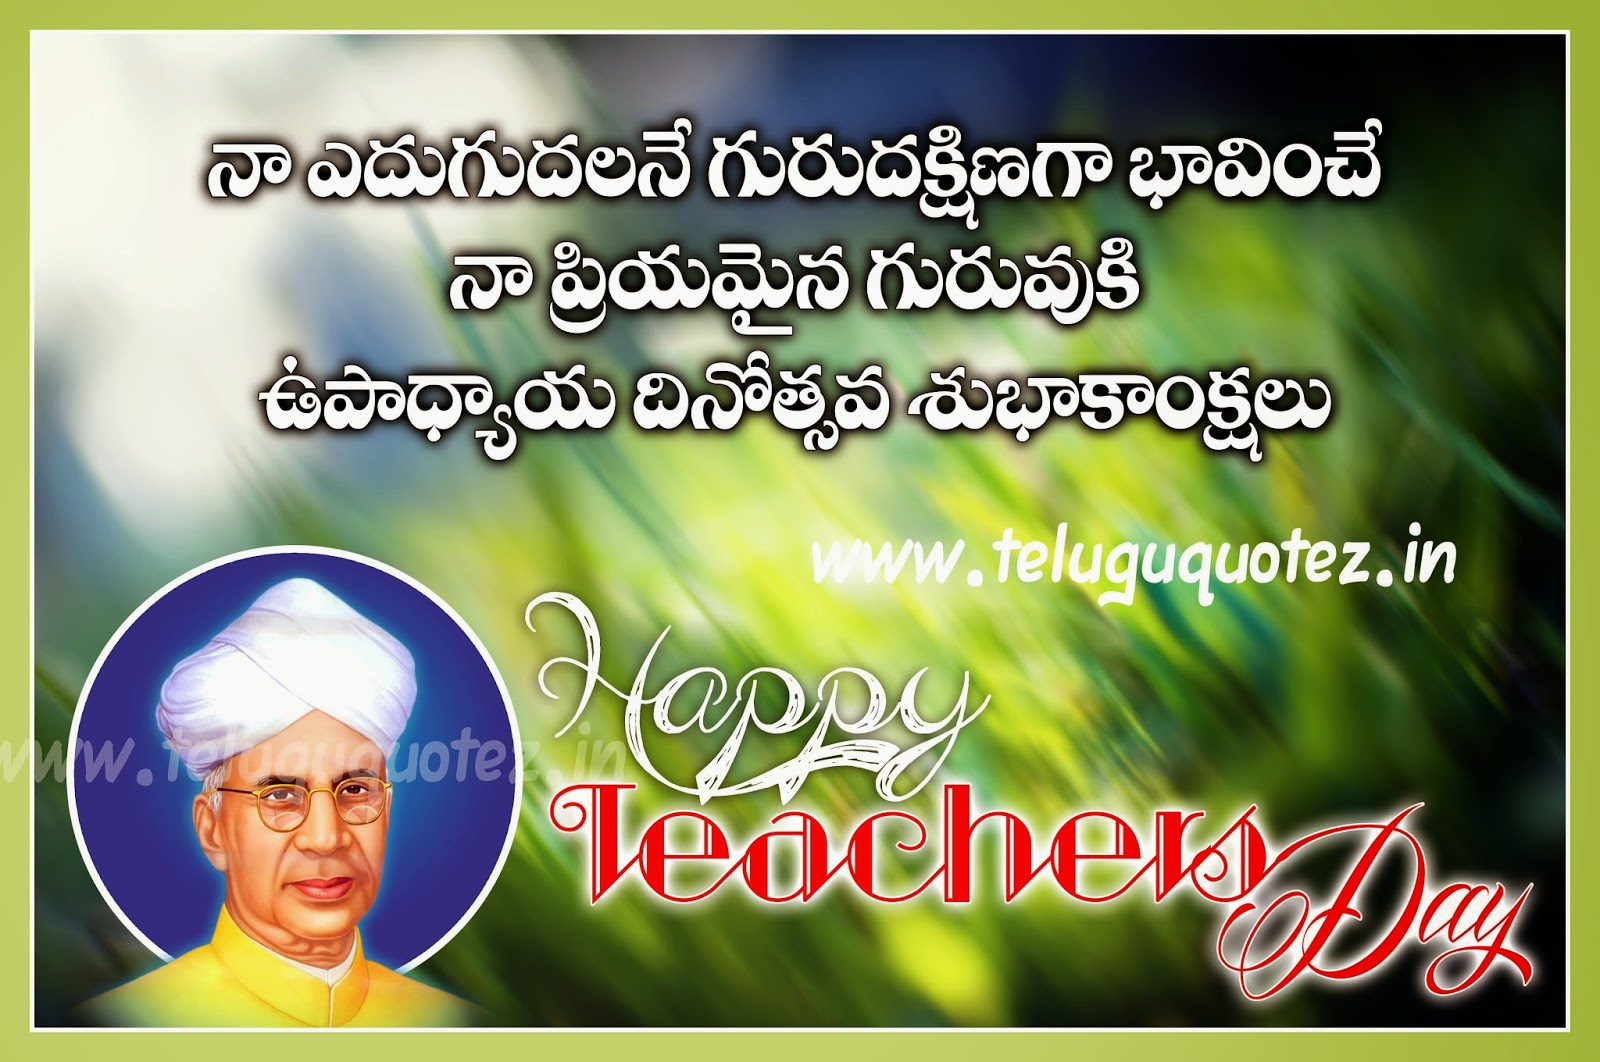 happy-teachers-day-telugu-sms-quotes-and-sayings-images-free-teluguquotez.in